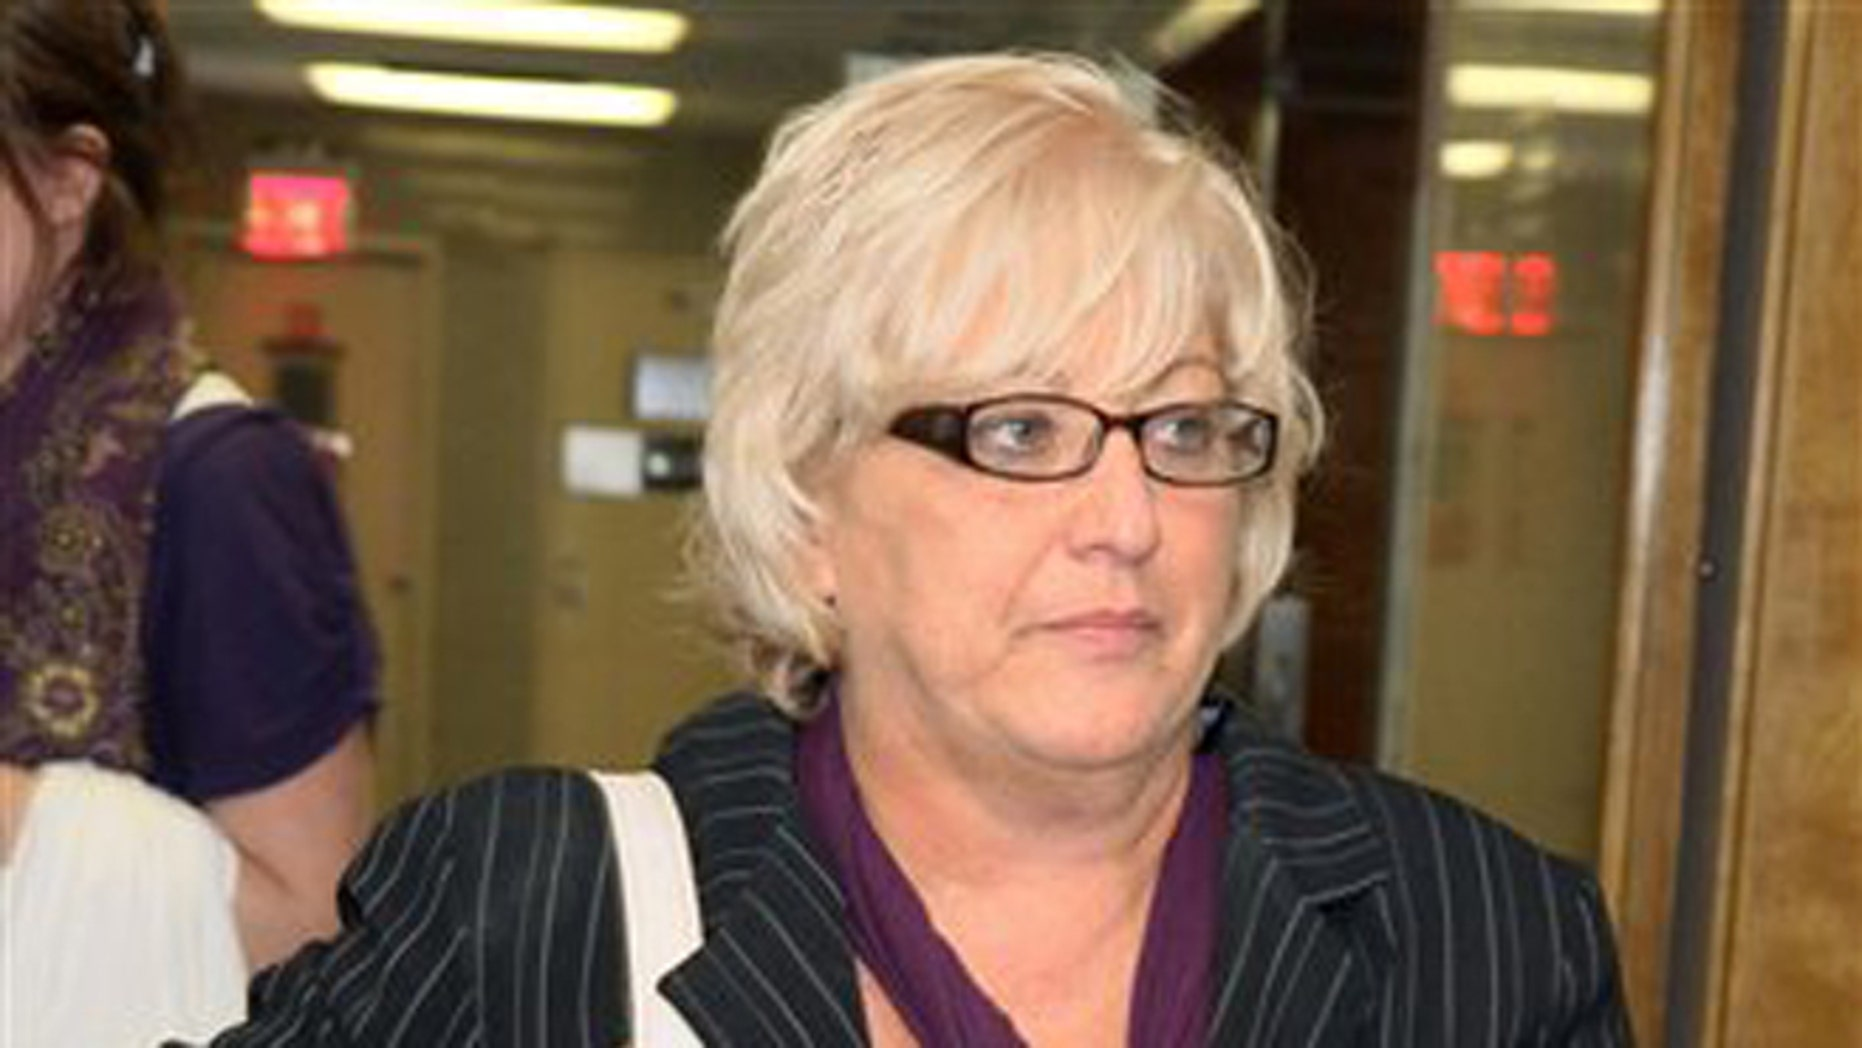 Sept. 23, 2011: In this file photo, Barbara Sheehan leaves a New York courtroom as her trial breaks for the day.